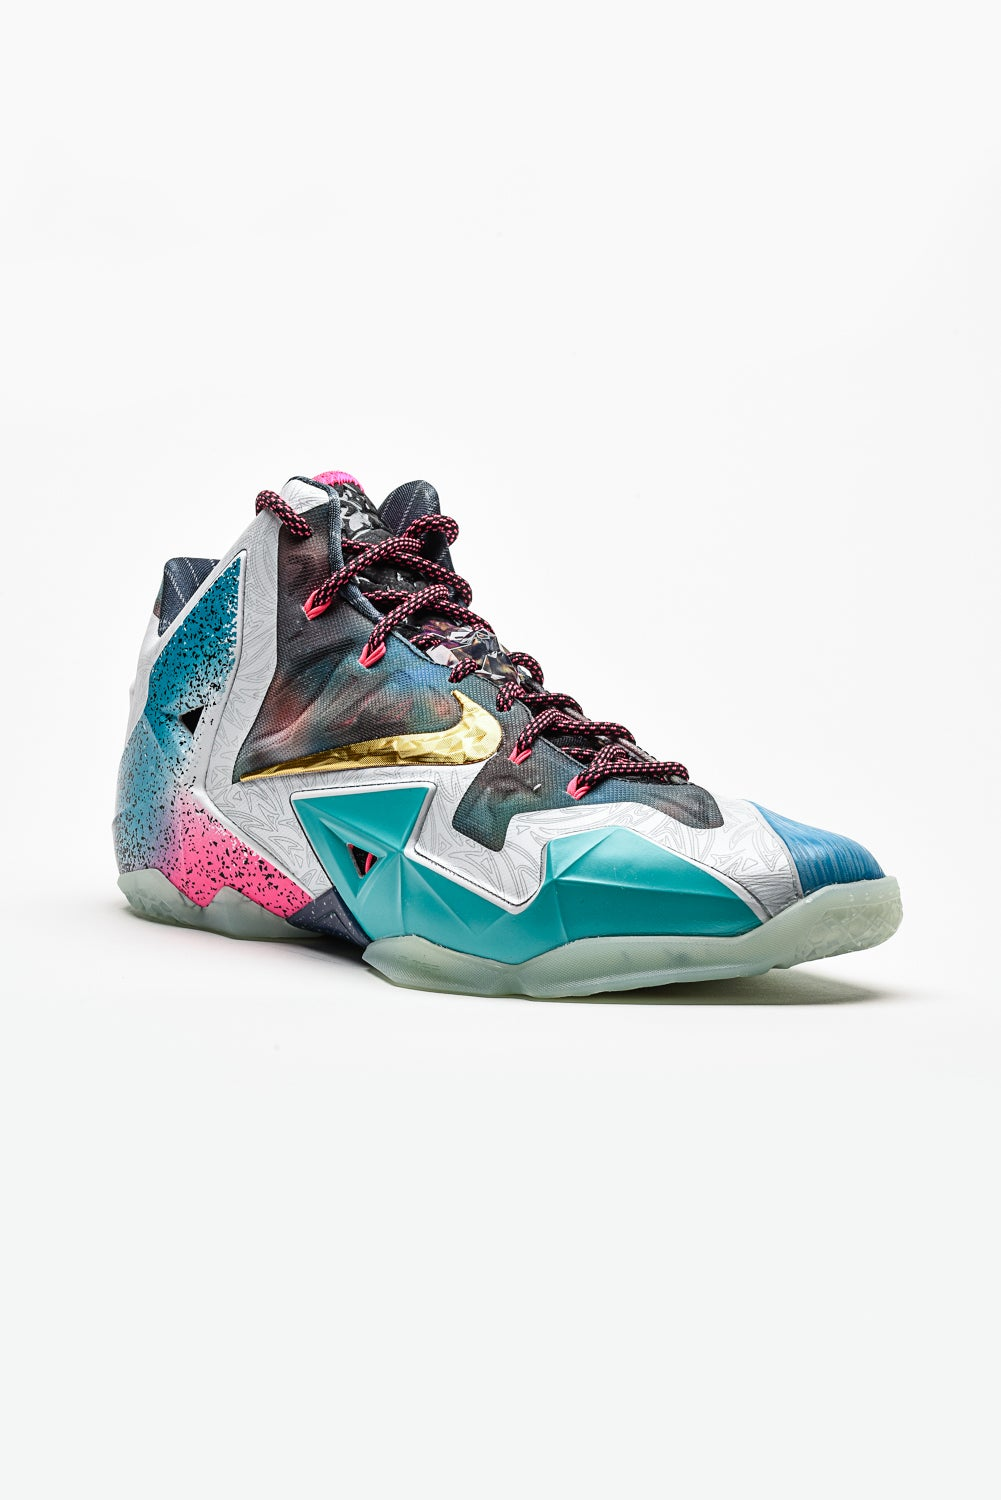 Image of Nike Air Lebron 11 - What the LeBron. Image of Nike Air Lebron 11  - What the LeBron. STYLE  650884-400. COLORWAY  BLACK LAVA SILVER ICE-GALAXY  BLUE ca22bc9af